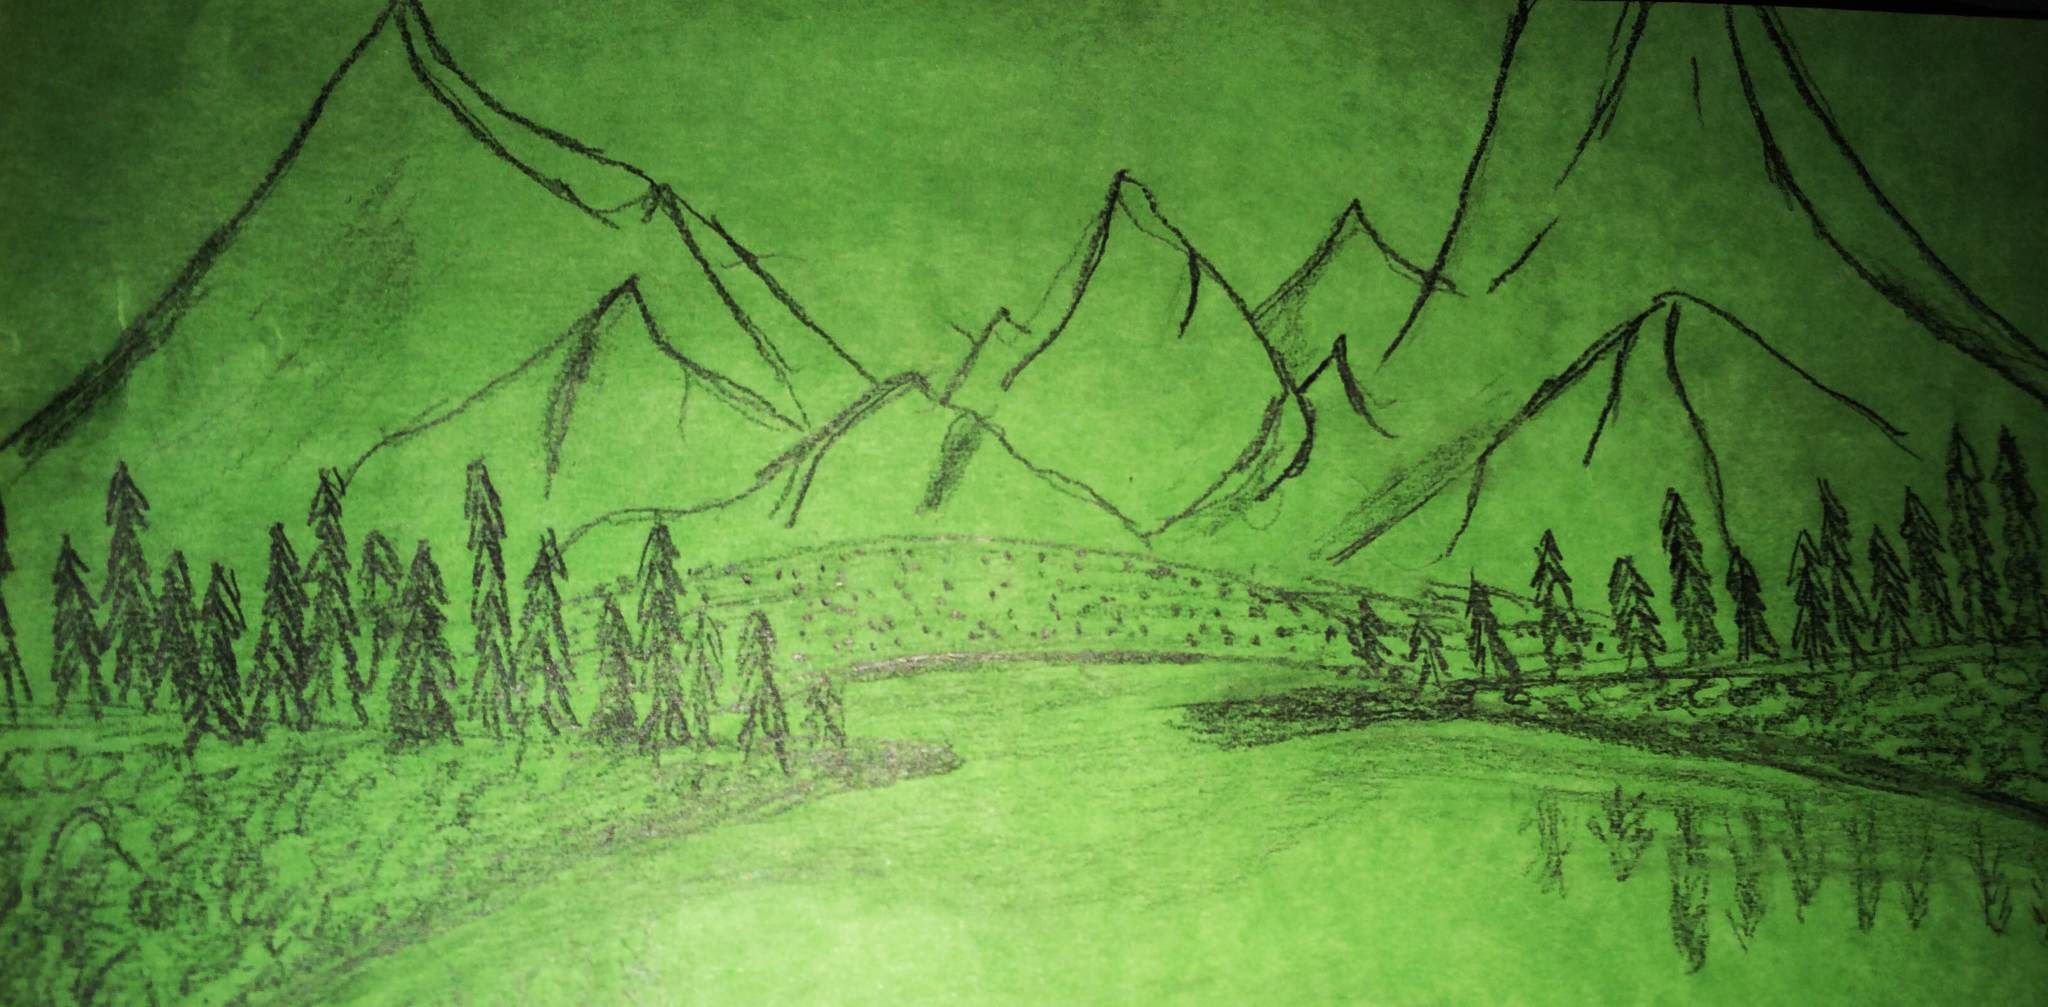 The Green Mountains Sketch